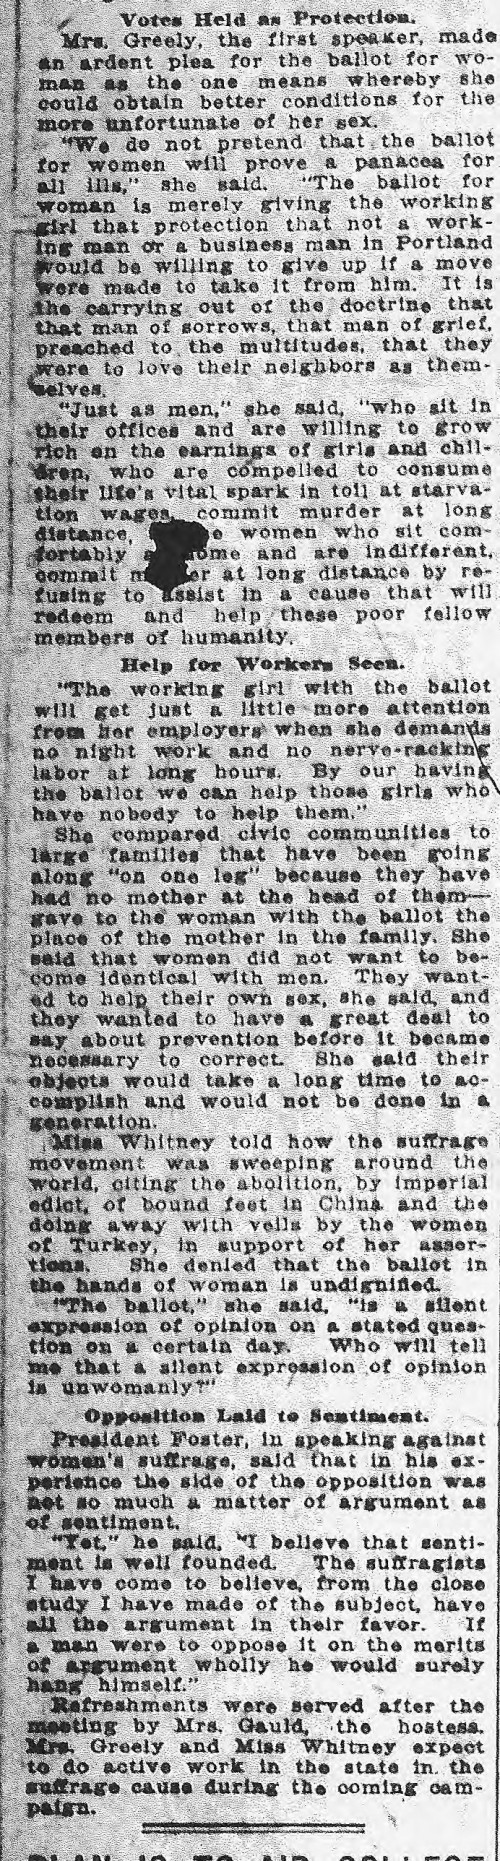 http://centuryofaction.org/images/uploads/OR_February_7_1912_4_Roosevelt_Made_Fun_of_by_Women_Part_2_thumb.jpg